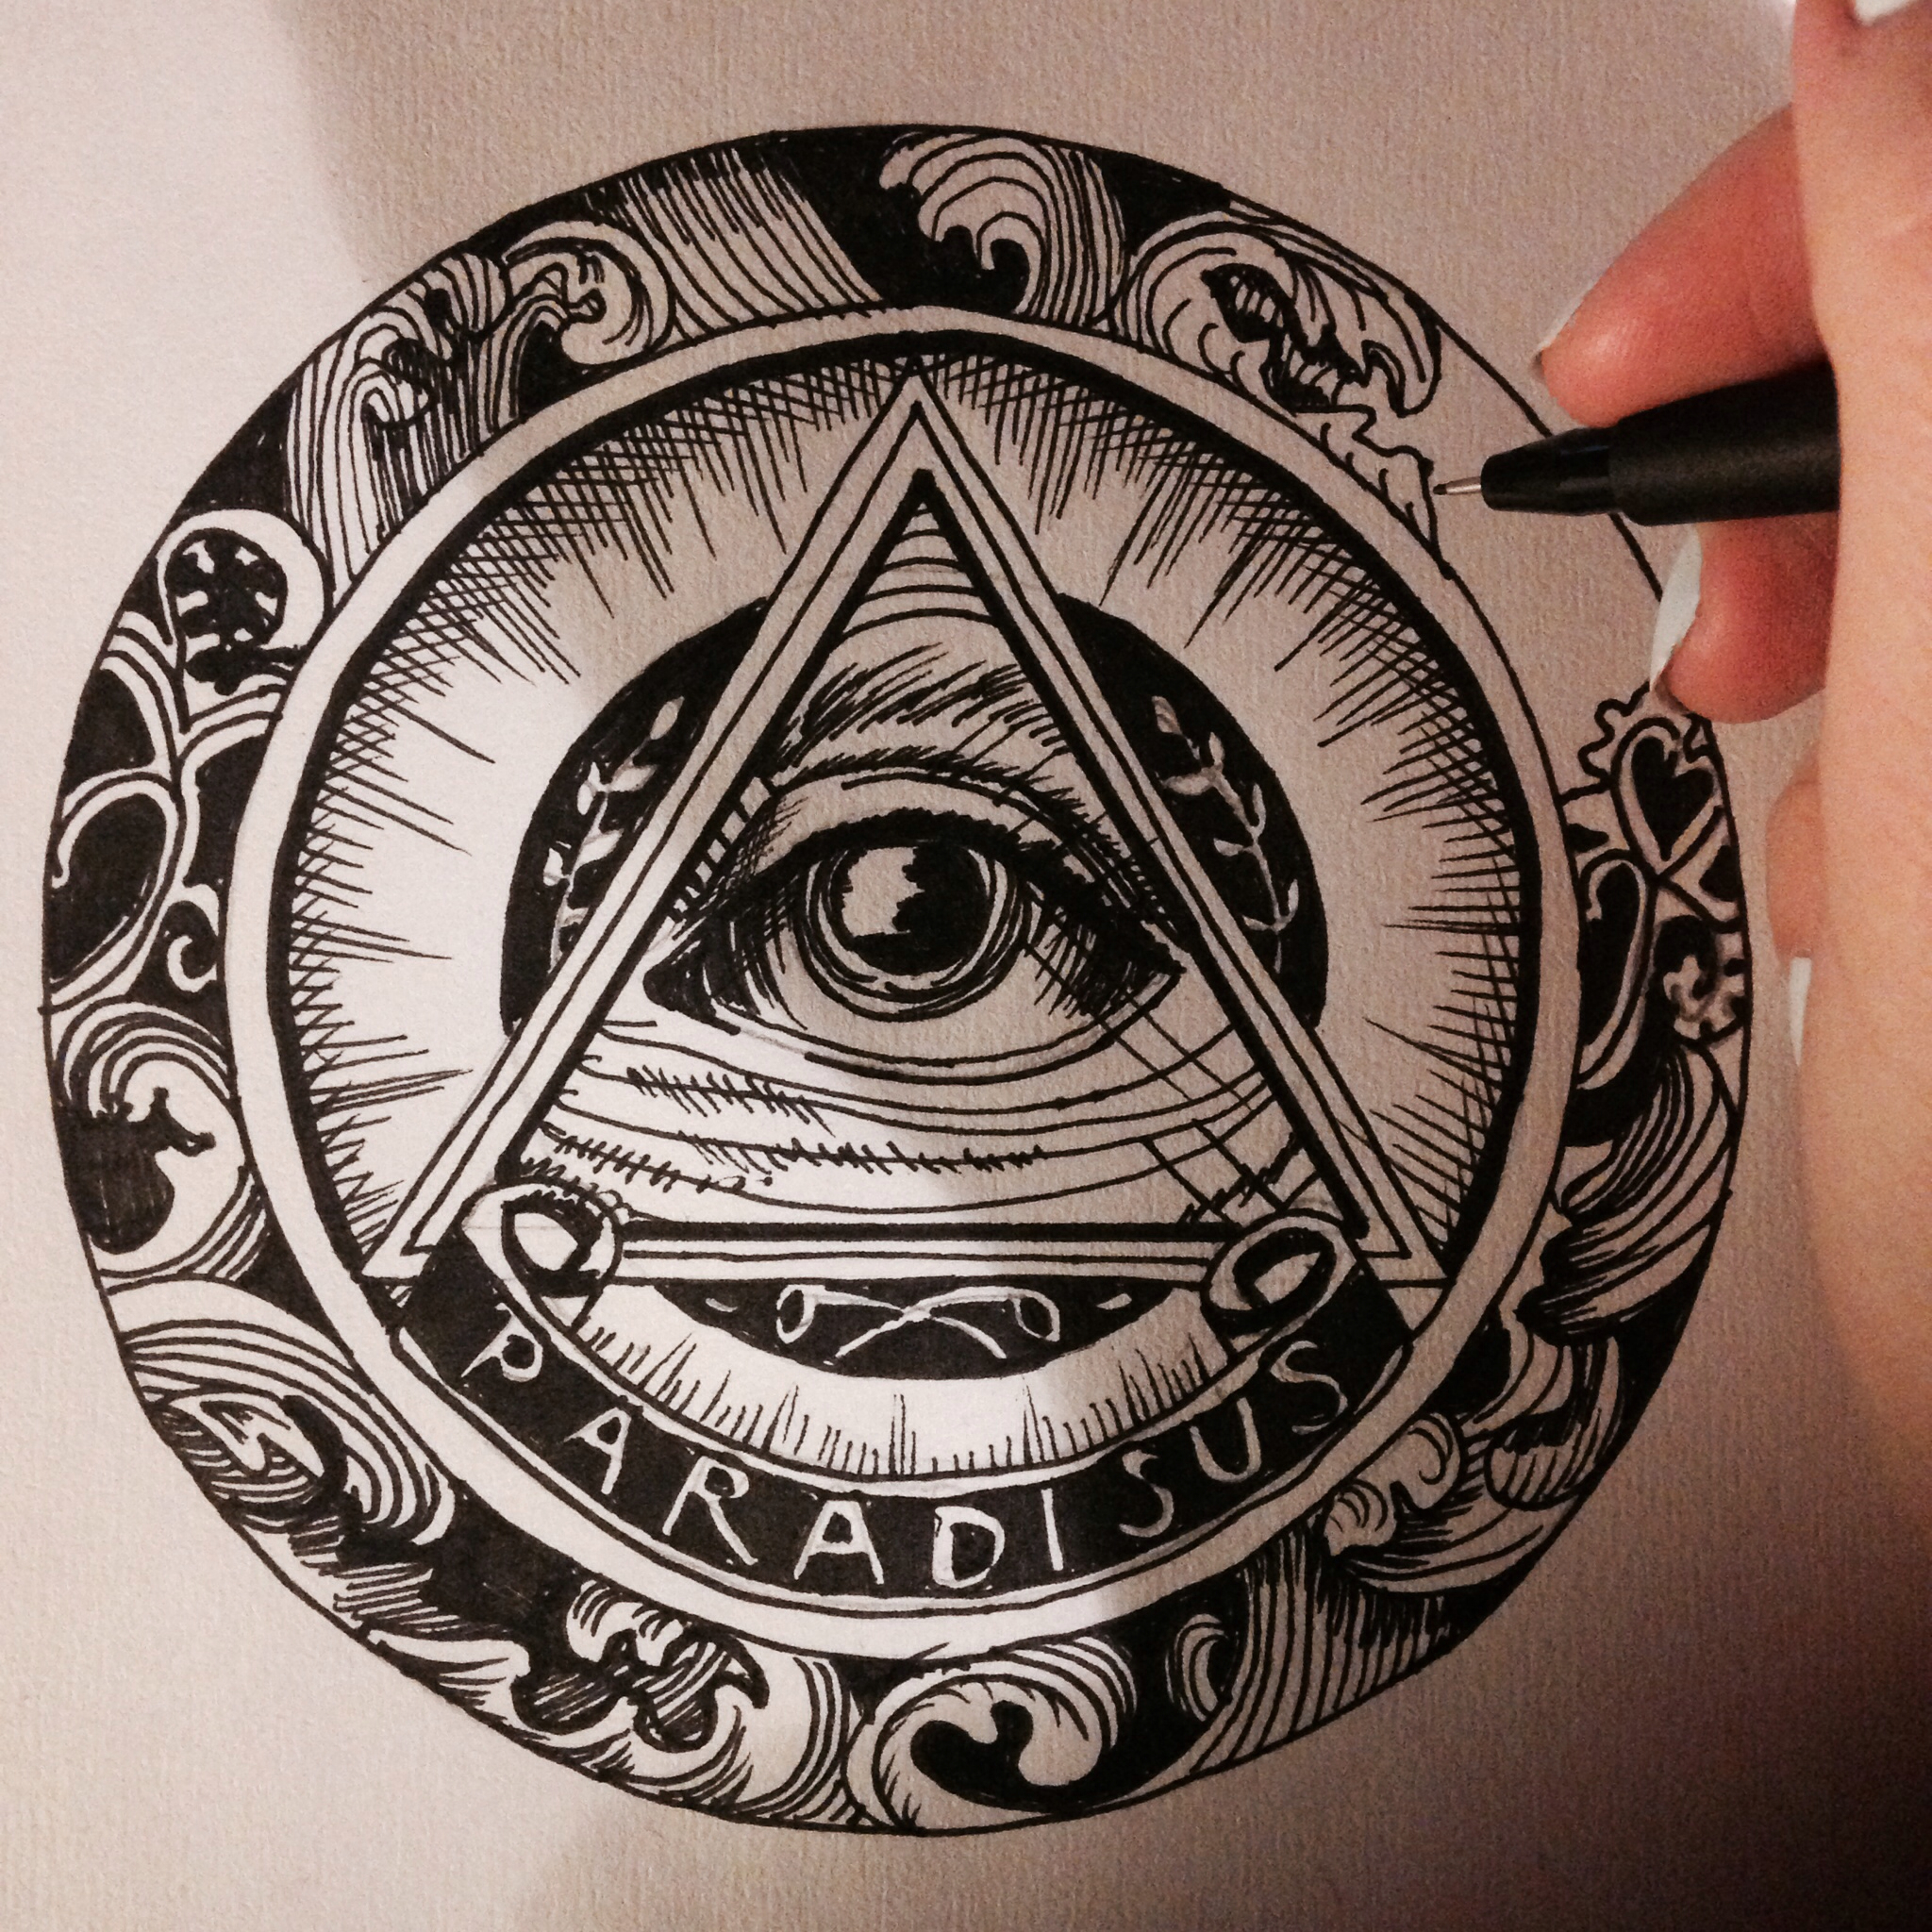 Drawn pyramid masonic For illuminati a triangle curved